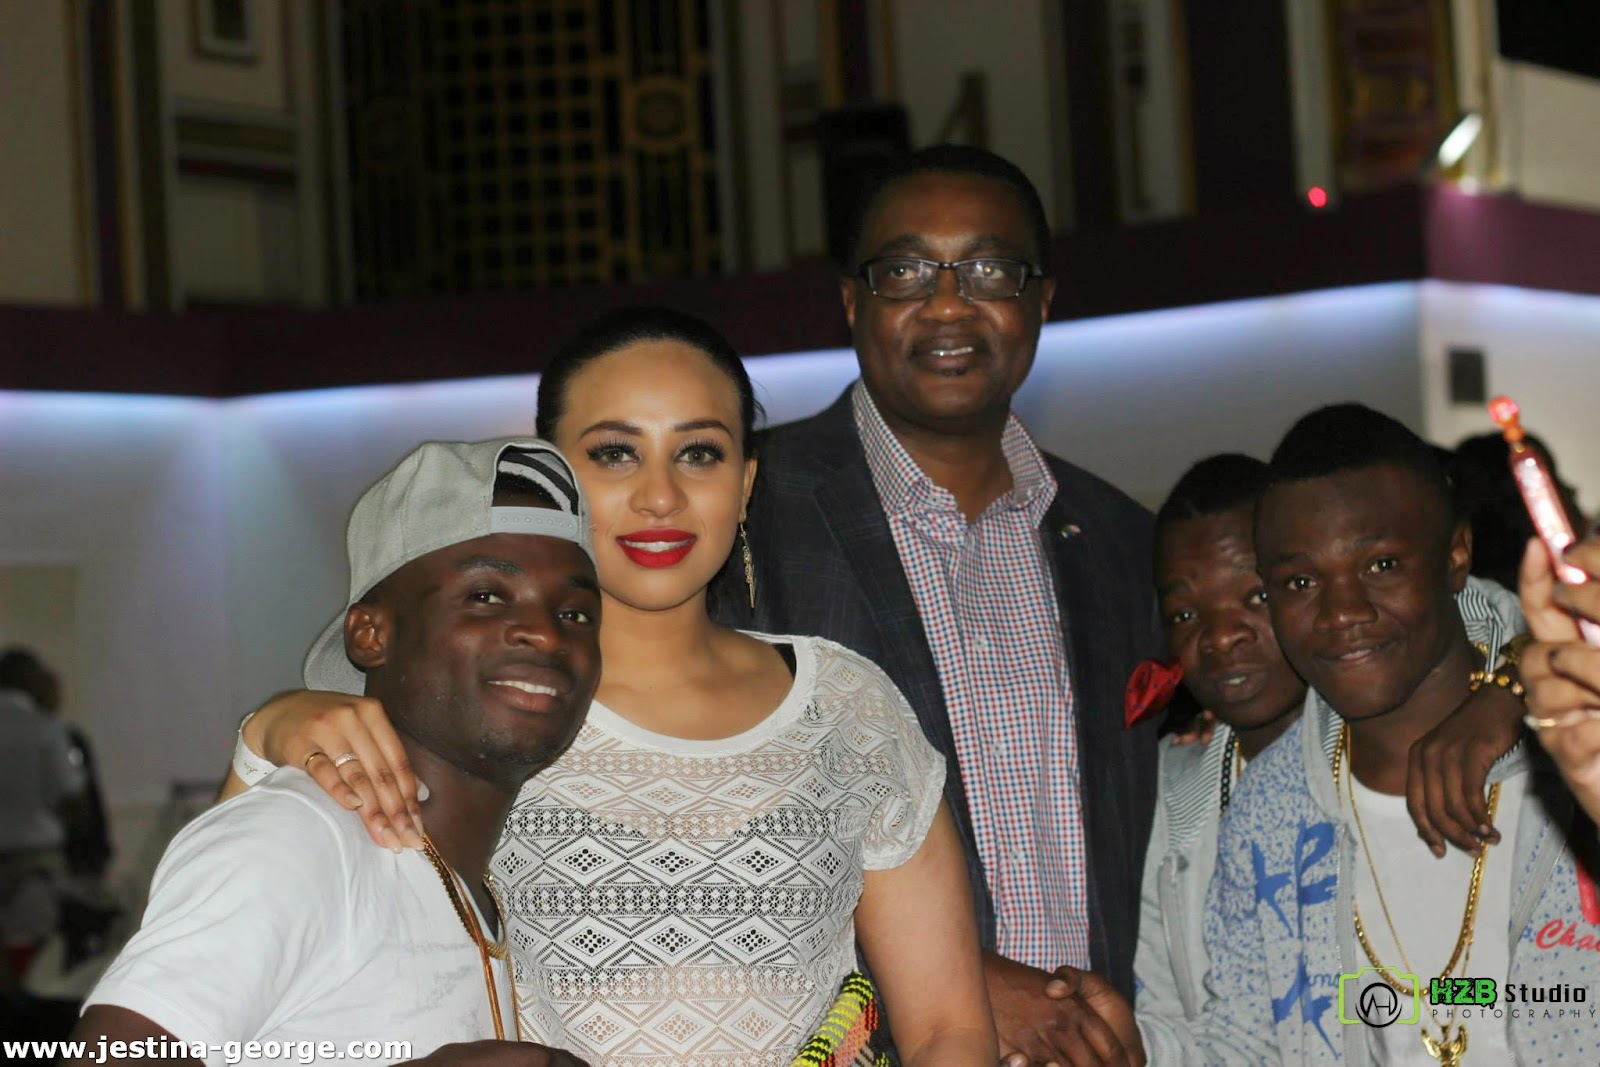 Picha 54 za Show Nzima ya Yamoto Band Ndani ya Royal Regency UK London